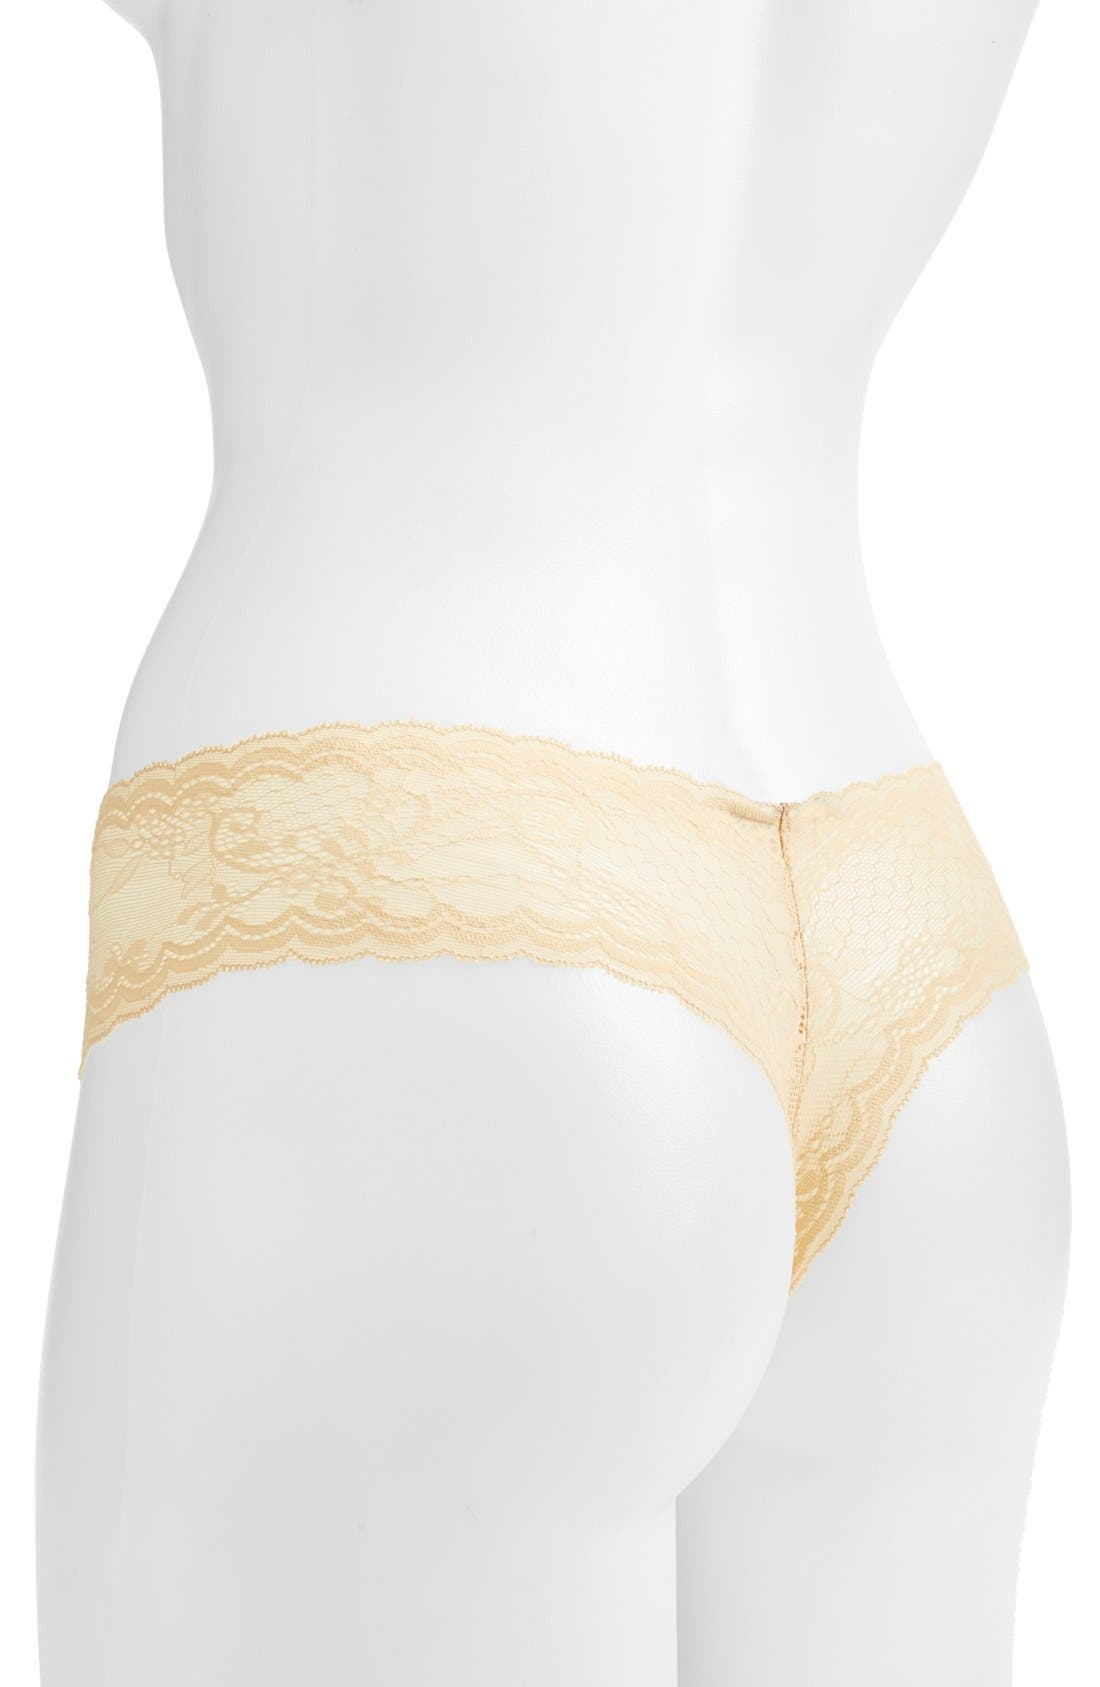 'Trenta' Low Rise Lace Thong,                             Alternate thumbnail 89, color,